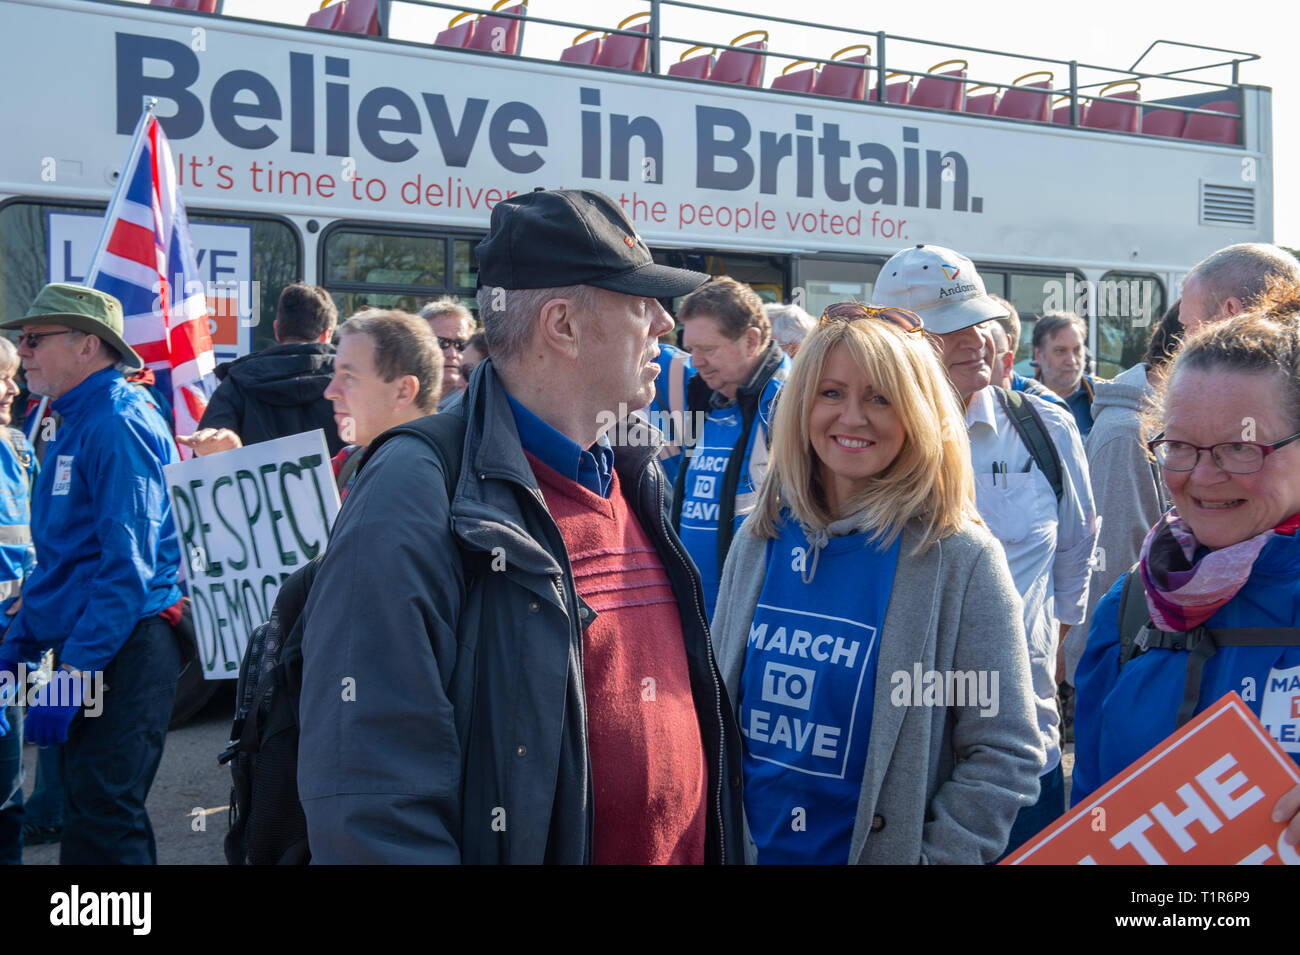 Aylesbury, United Kingdom. 28 March 2019. The pro Brexit campaign 'March for Leave' sets off from Aylesbury led by Leave Means Leave chairman John Longworth. PICTURED: Esther McVey MP. Credit: Peter Manning/Alamy Live News Stock Photo